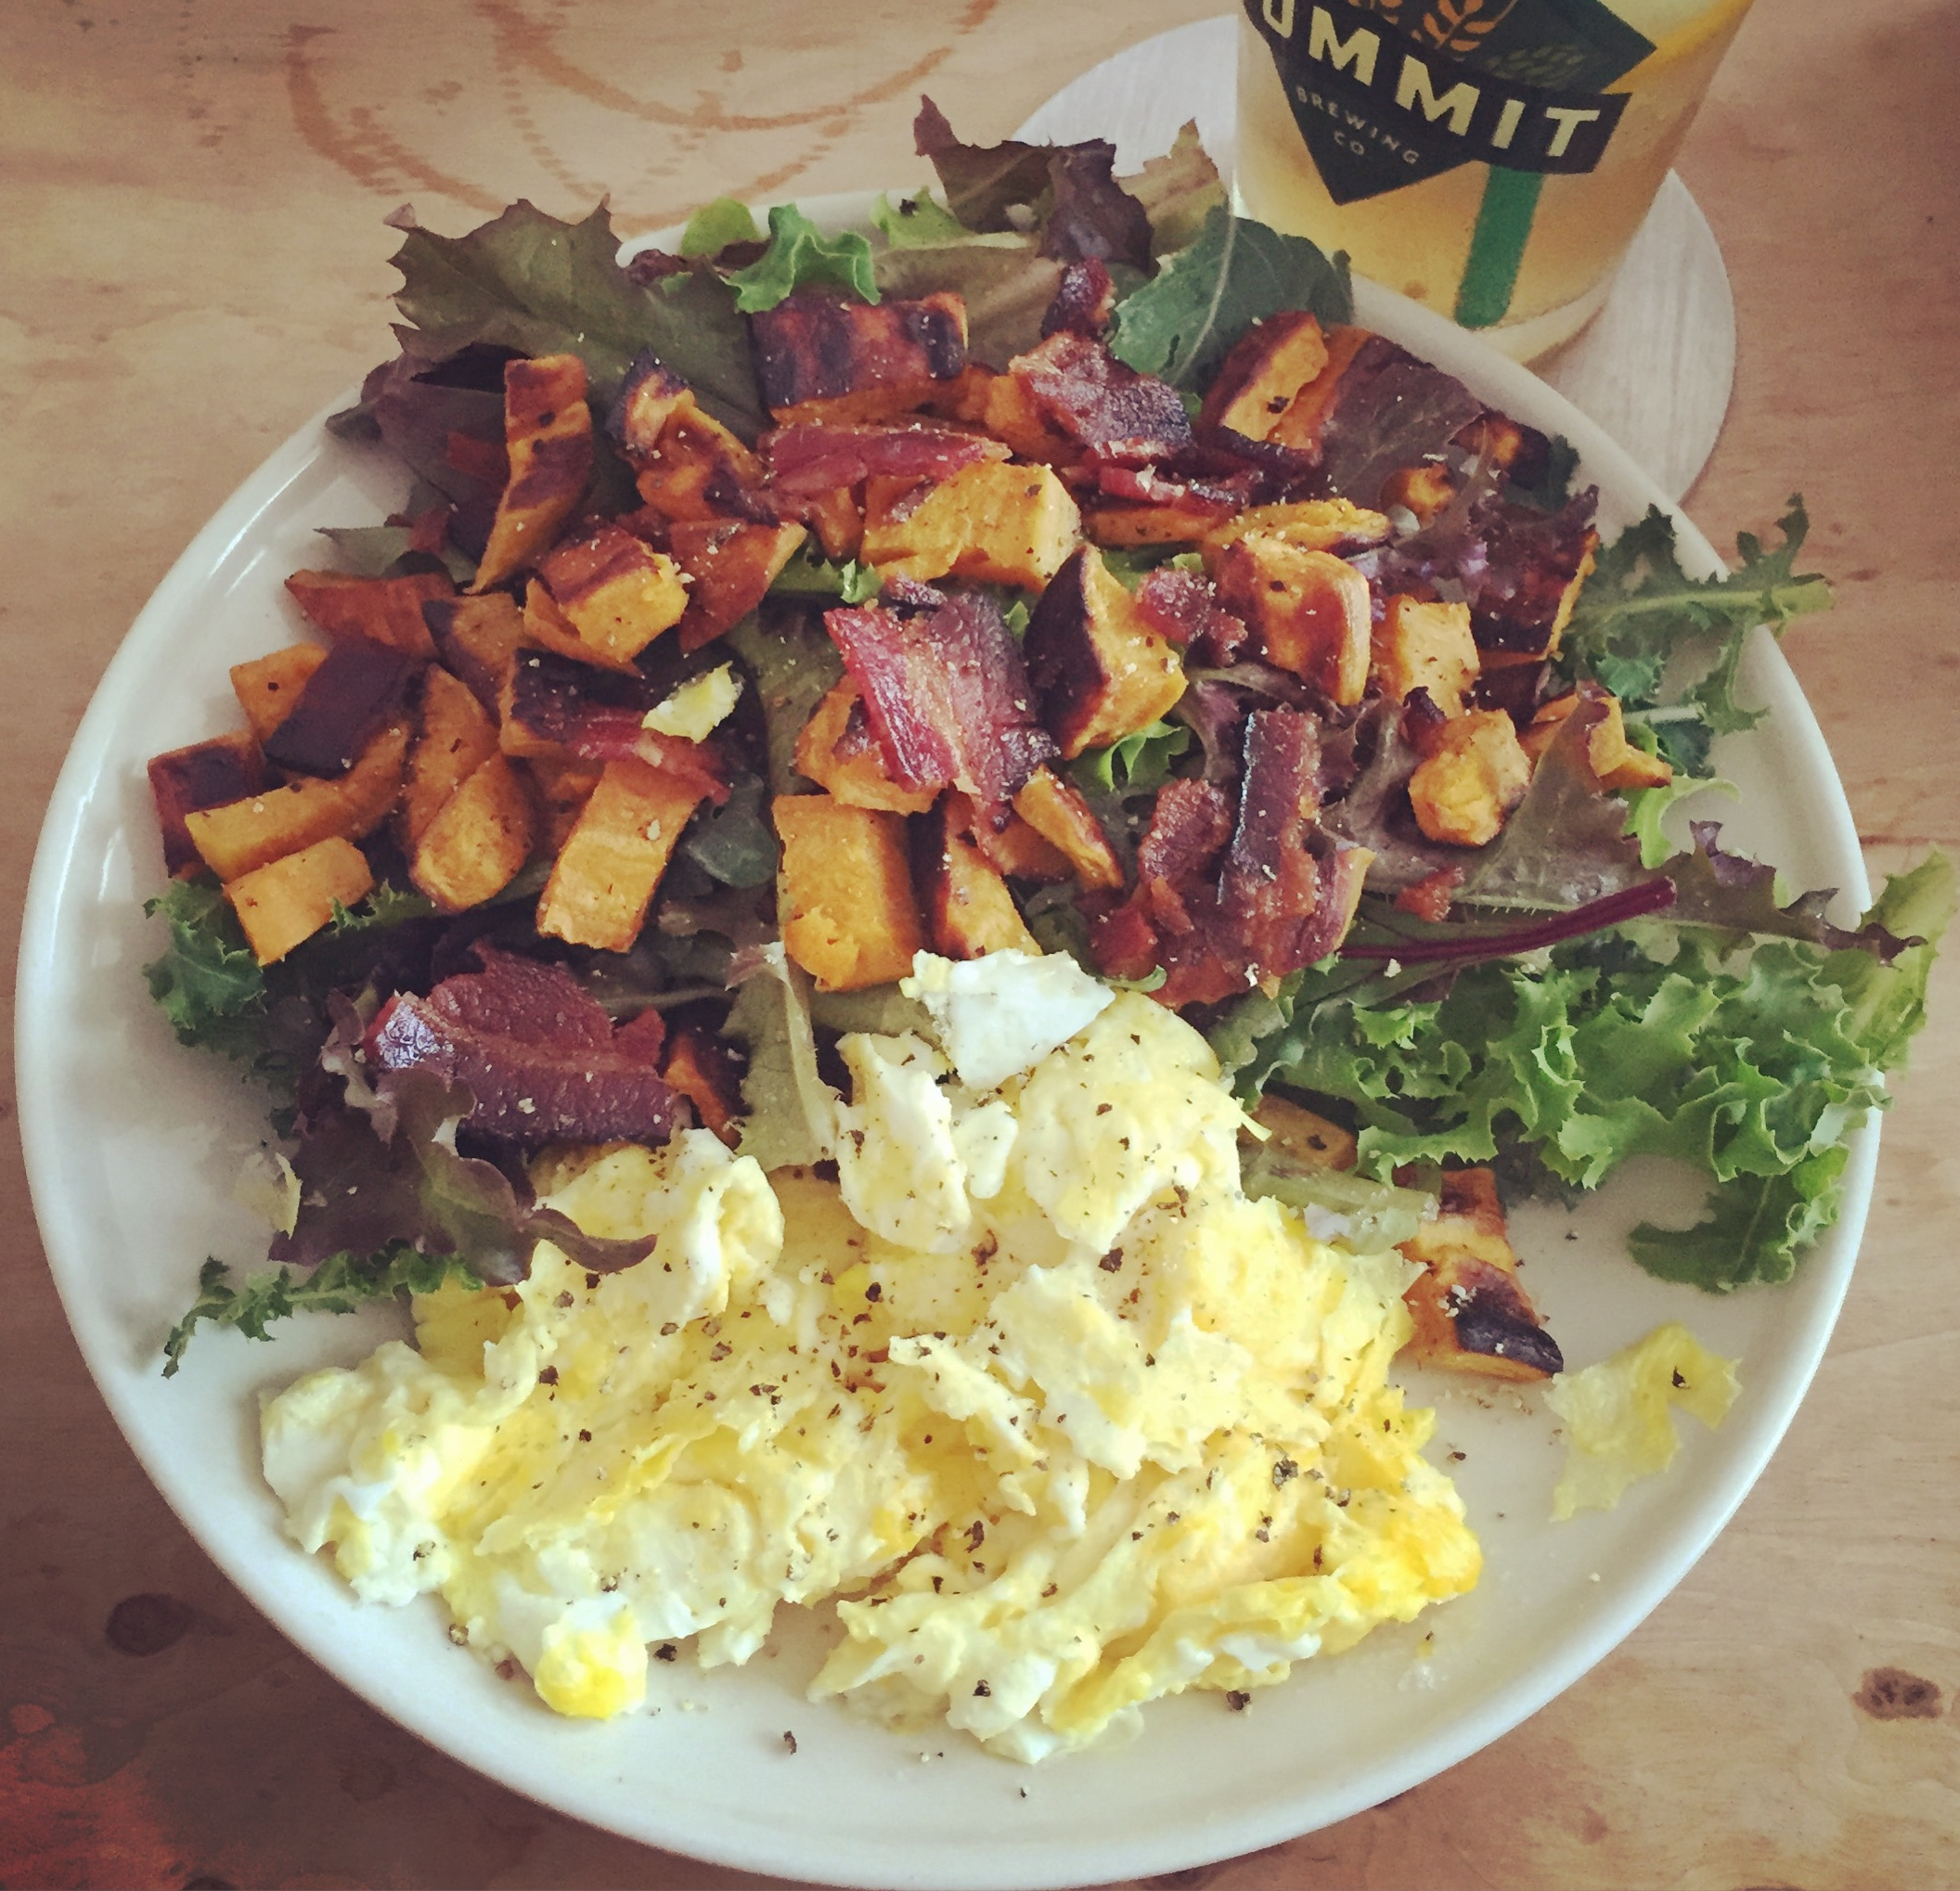 See this? This is a delightful creation that's totally Paleo-friendly: Scrambled eggs, and mixed greens topped with roasted sweet potato and bacon. It's one of my favorite Sunday brunch meals.Drooling yet?